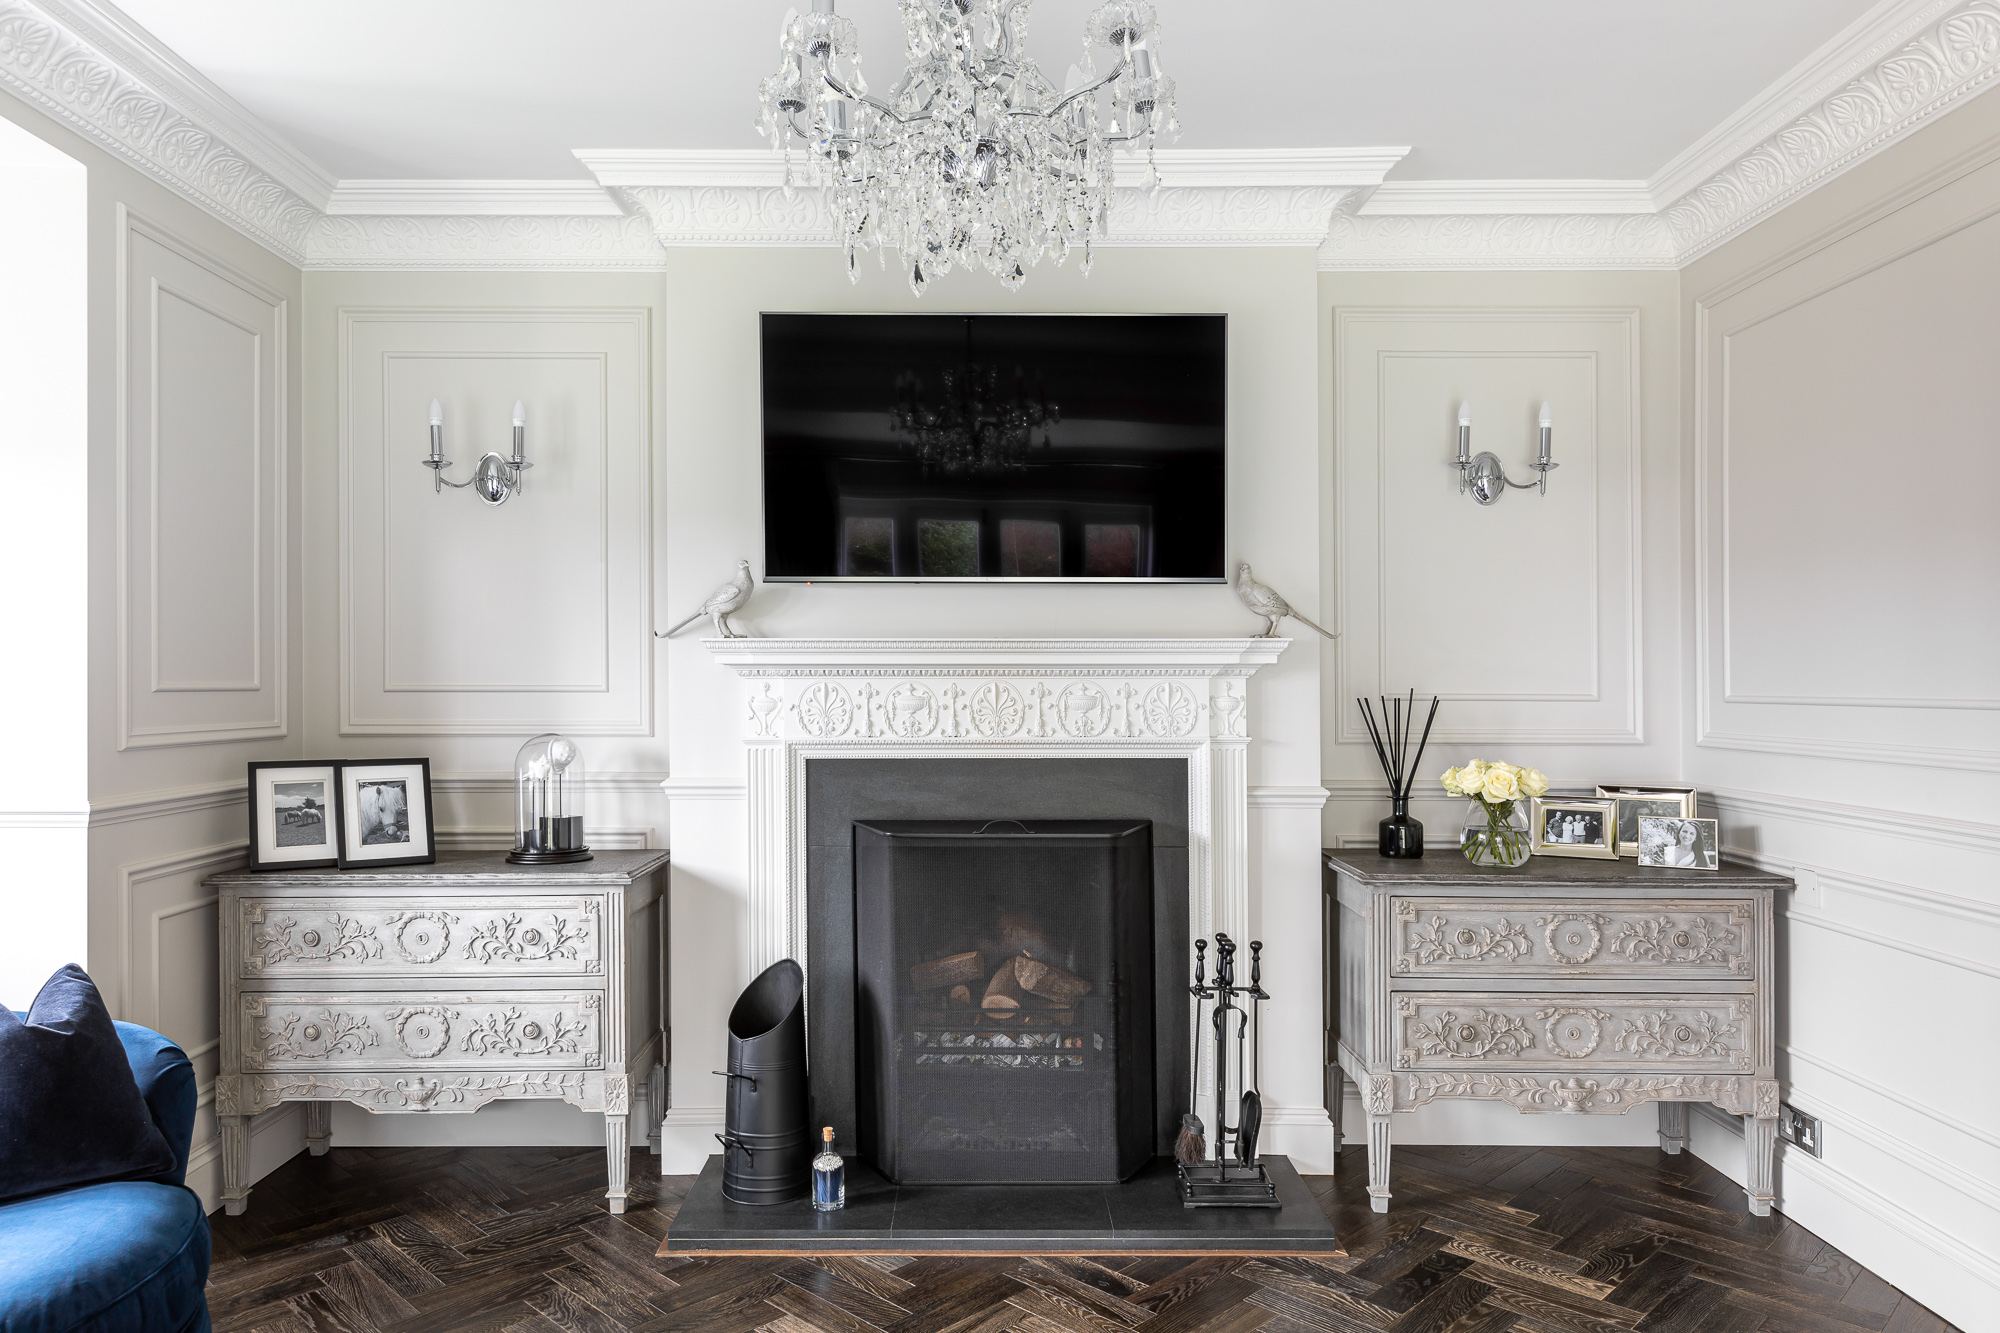 jonathan bond, interior photographer, ornate white fireplace, harlow